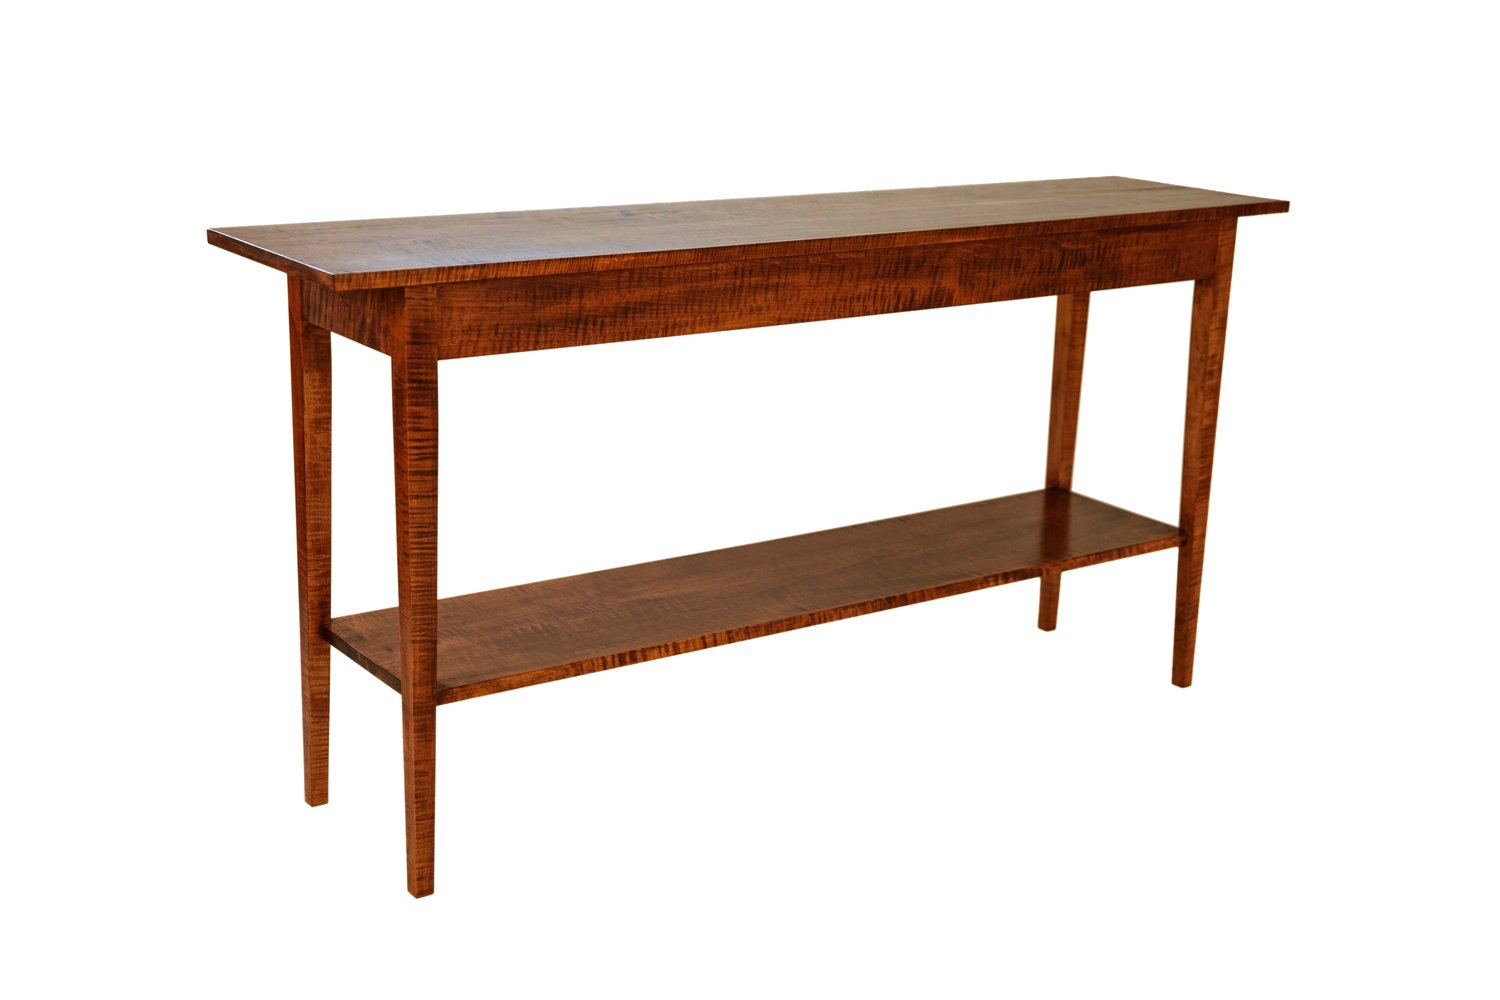 60 Hall Sofa Table With Shelf Your Site Title